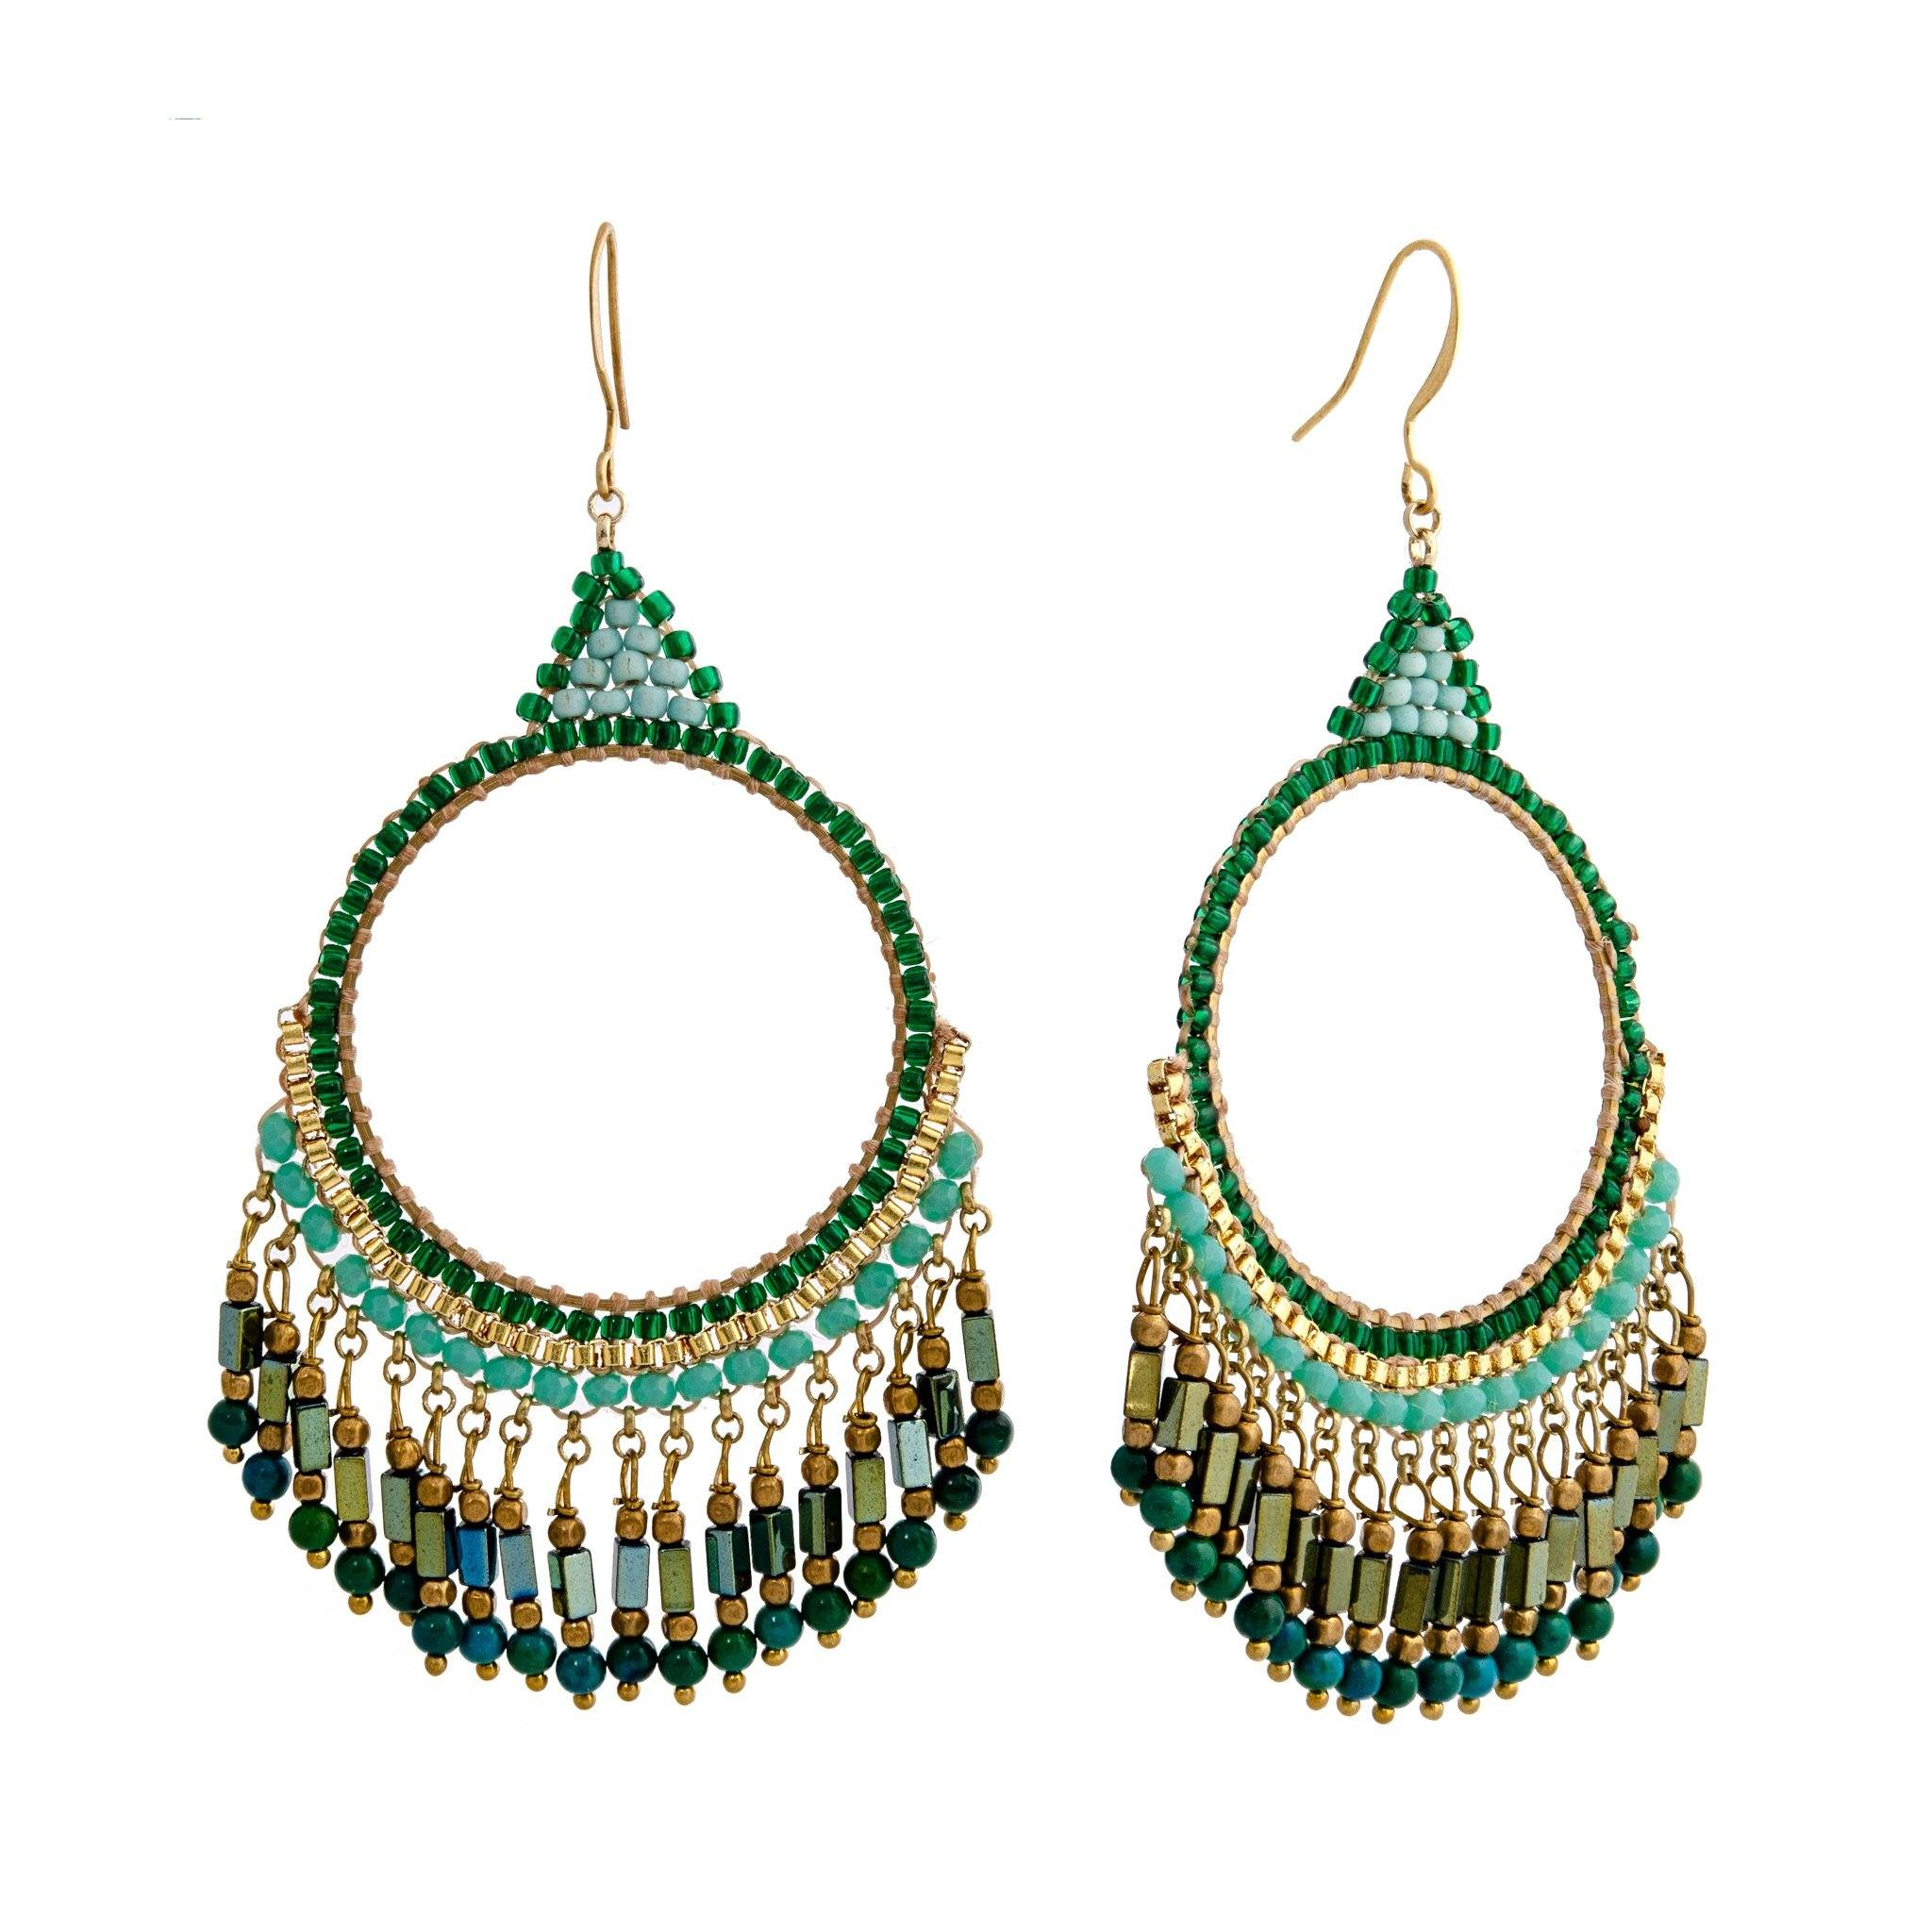 BOHEMIA green earrings